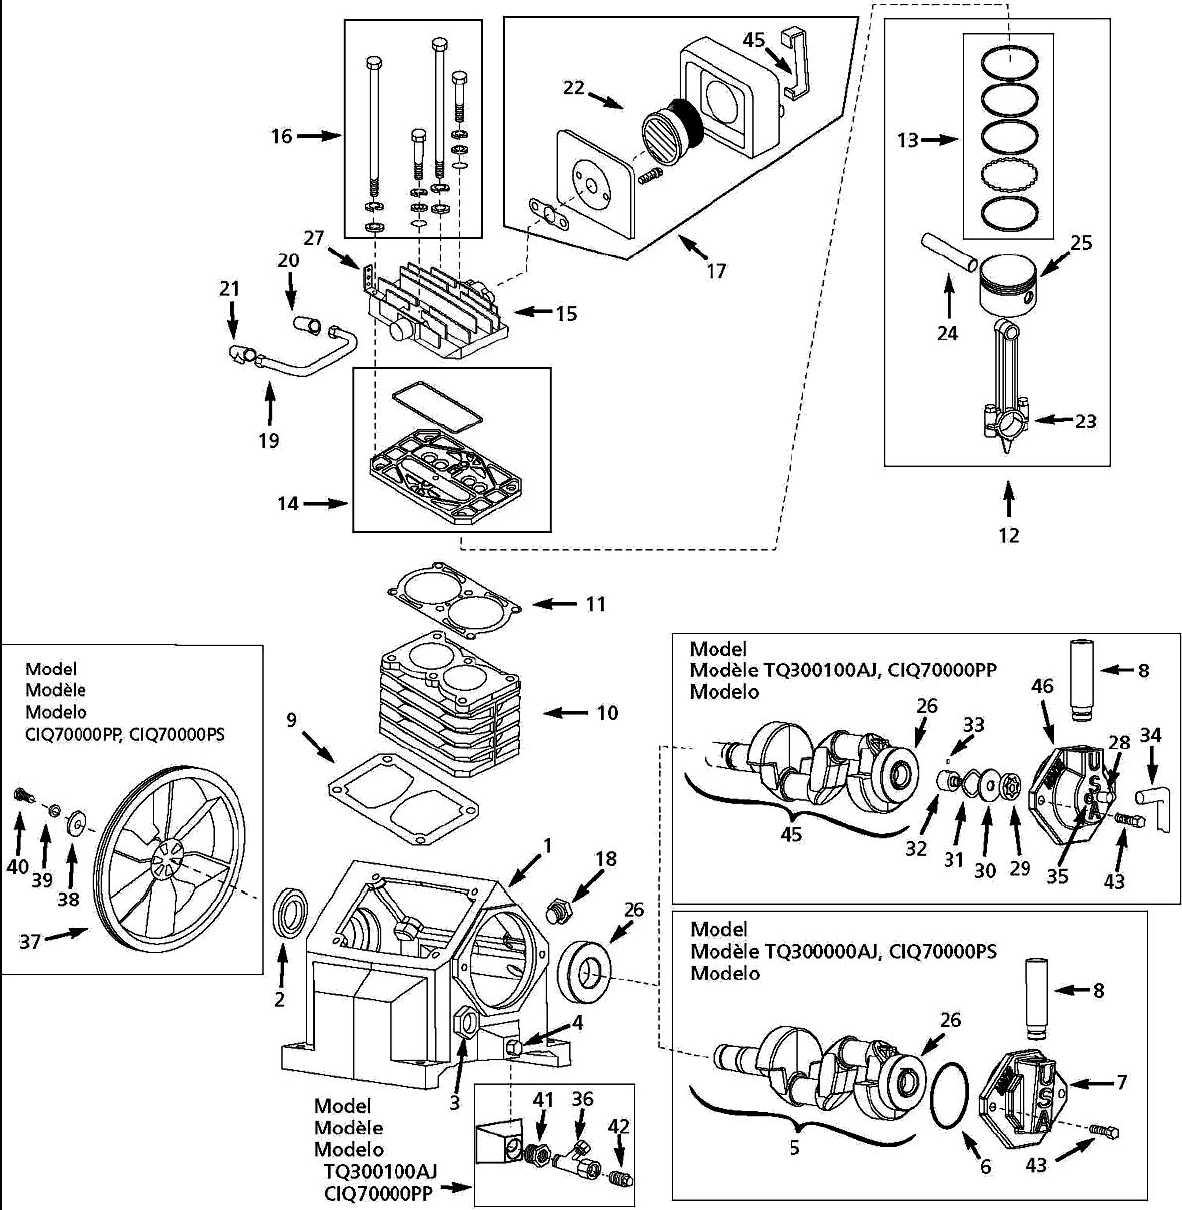 TQ300000AJ - Air Compressor Pump Parts schematic